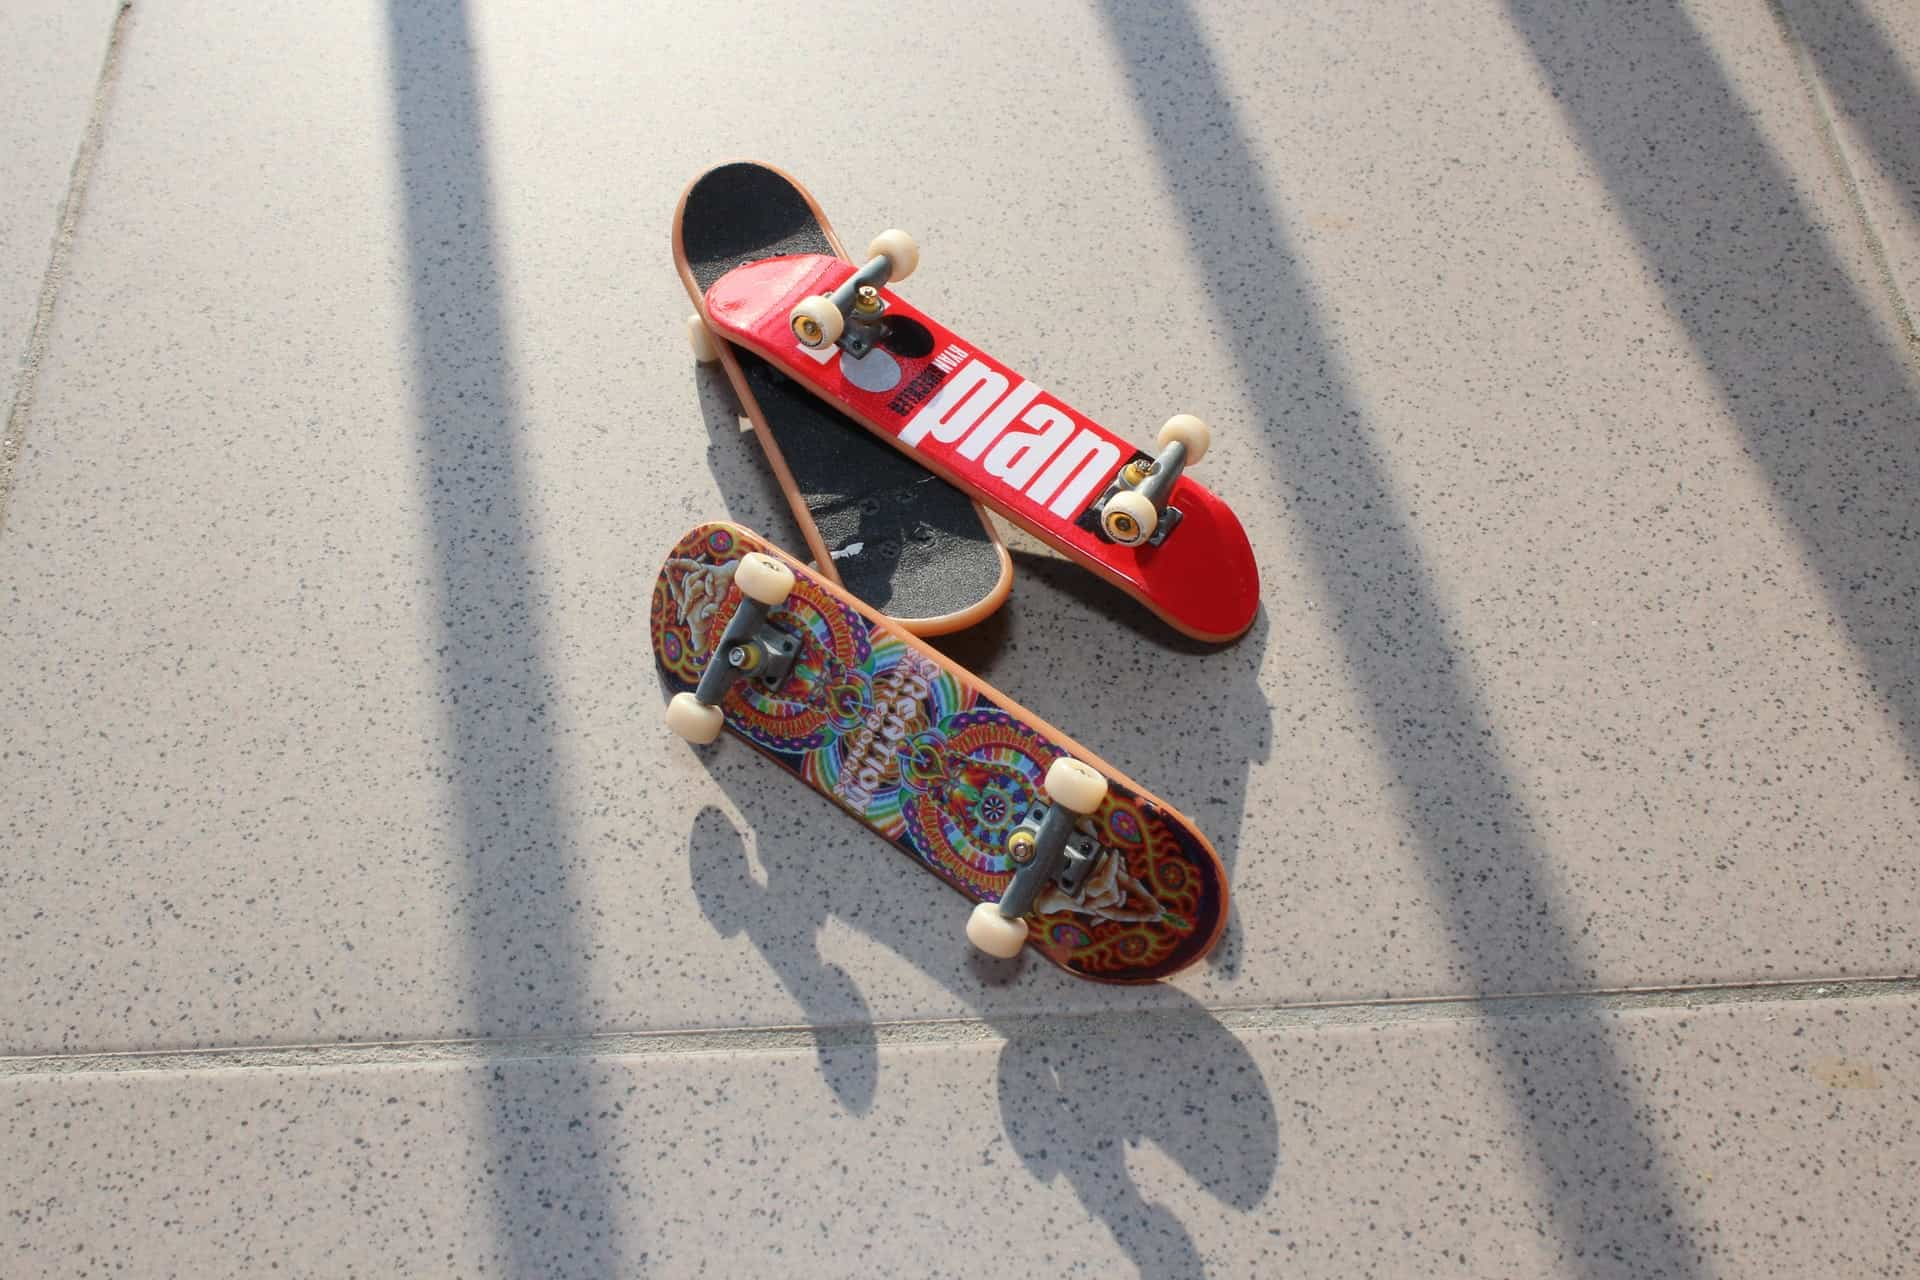 Few Tips On How To Locate The Best Skateboards For Sale